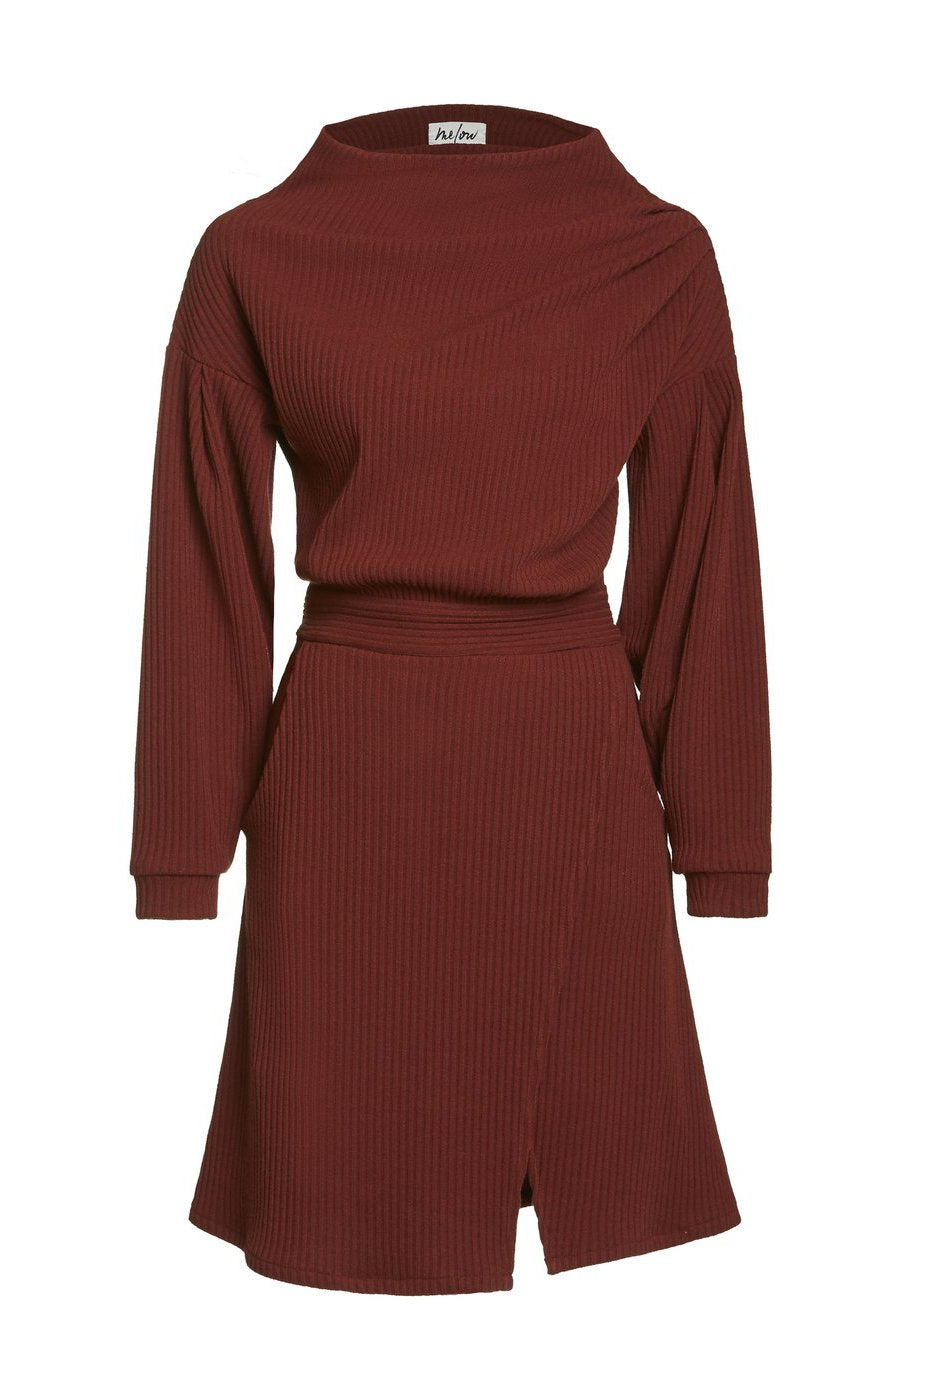 Zodiak Dress in Burgundy from Melow by Melissa Bolduc, avaialbe in sizes xs to xl